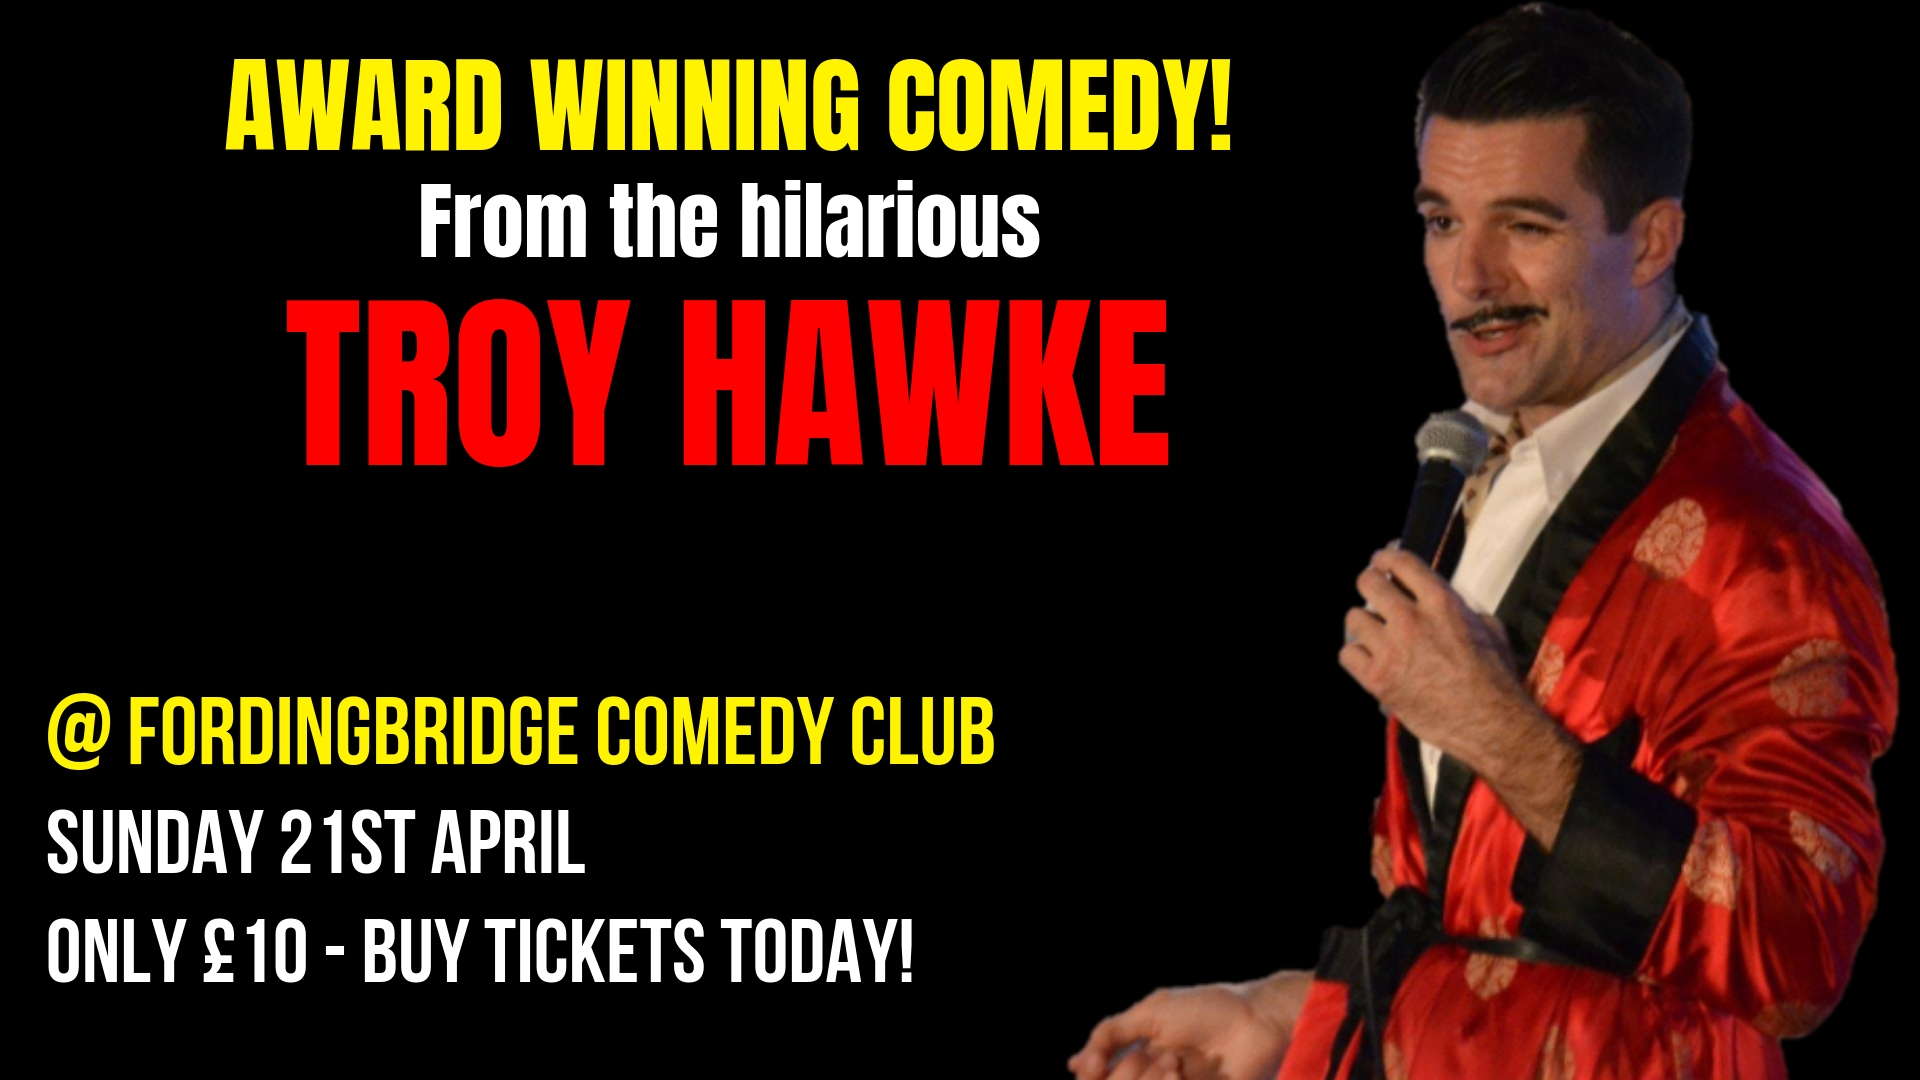 Troy Hawke @ Fordingbridge Comedy Club